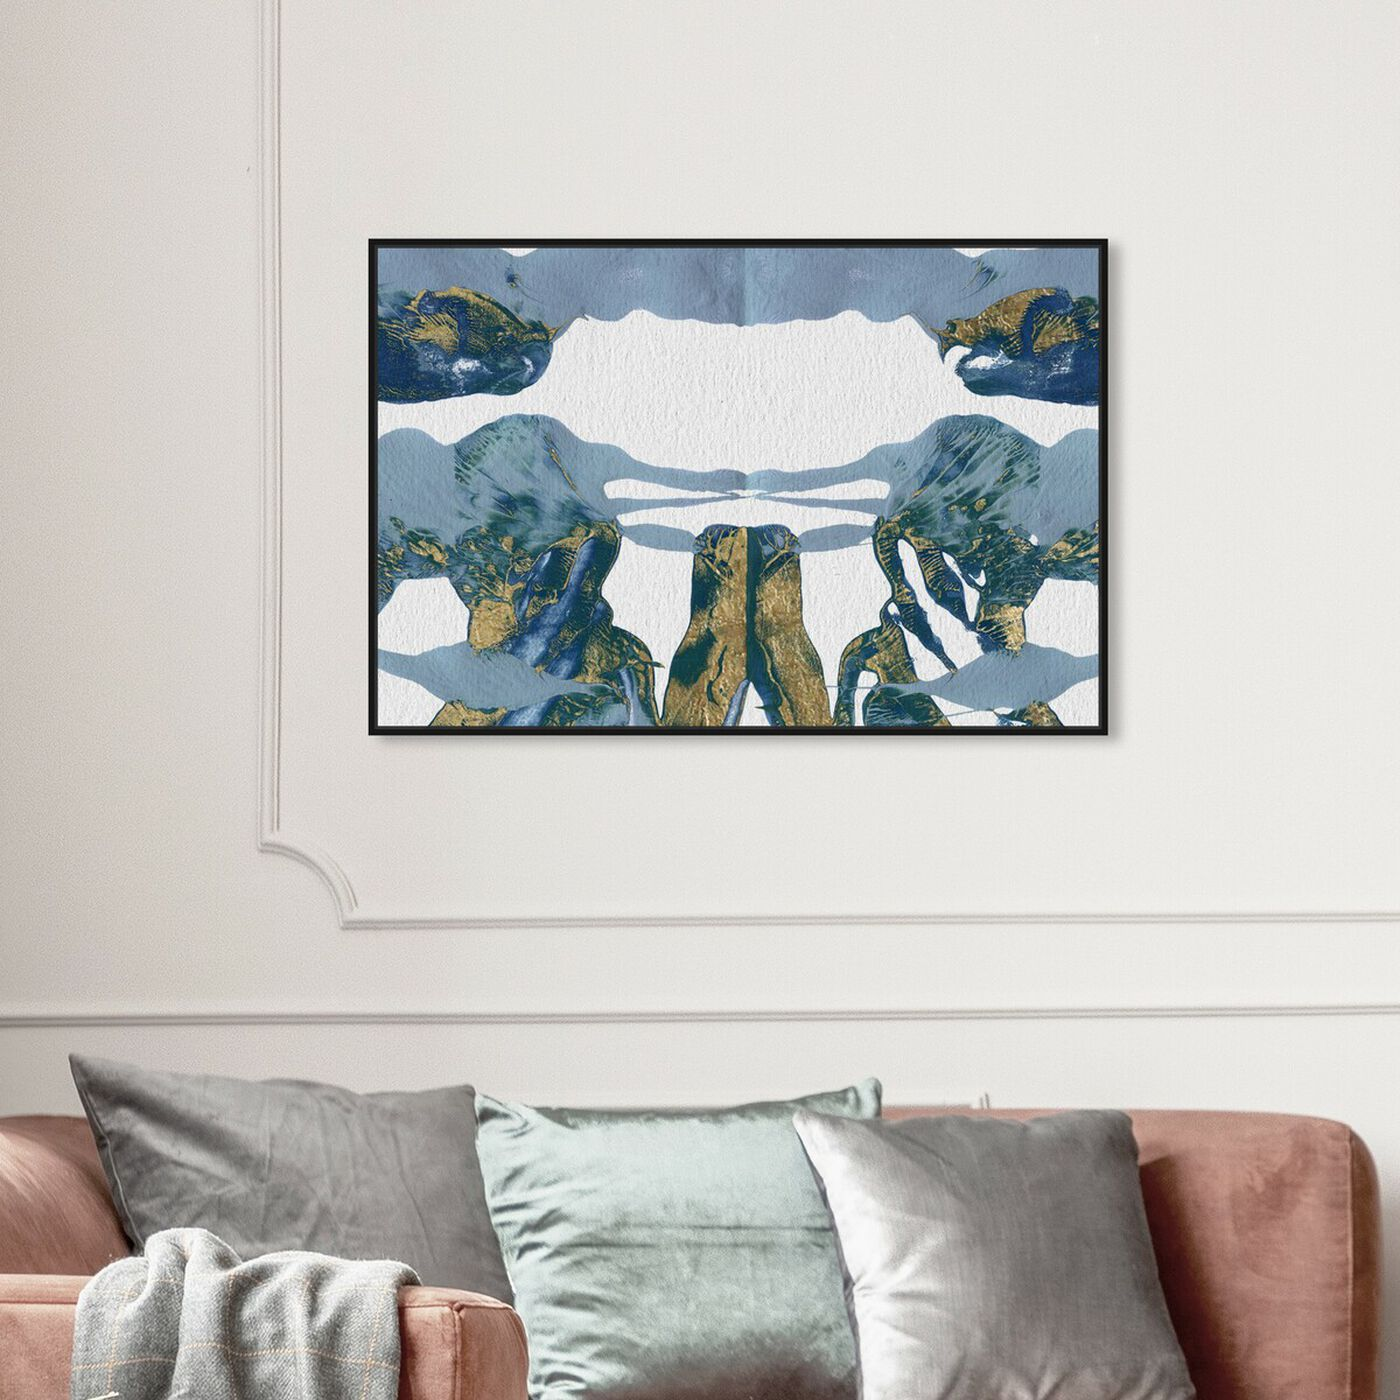 Hanging view of Midsummer's Night - Signature Collection featuring abstract and paint art.